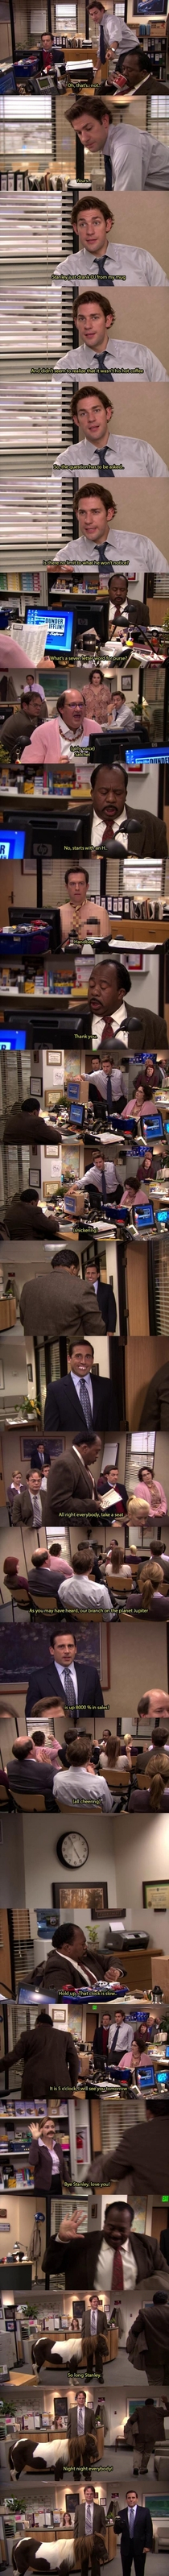 My favourite moment from The Office